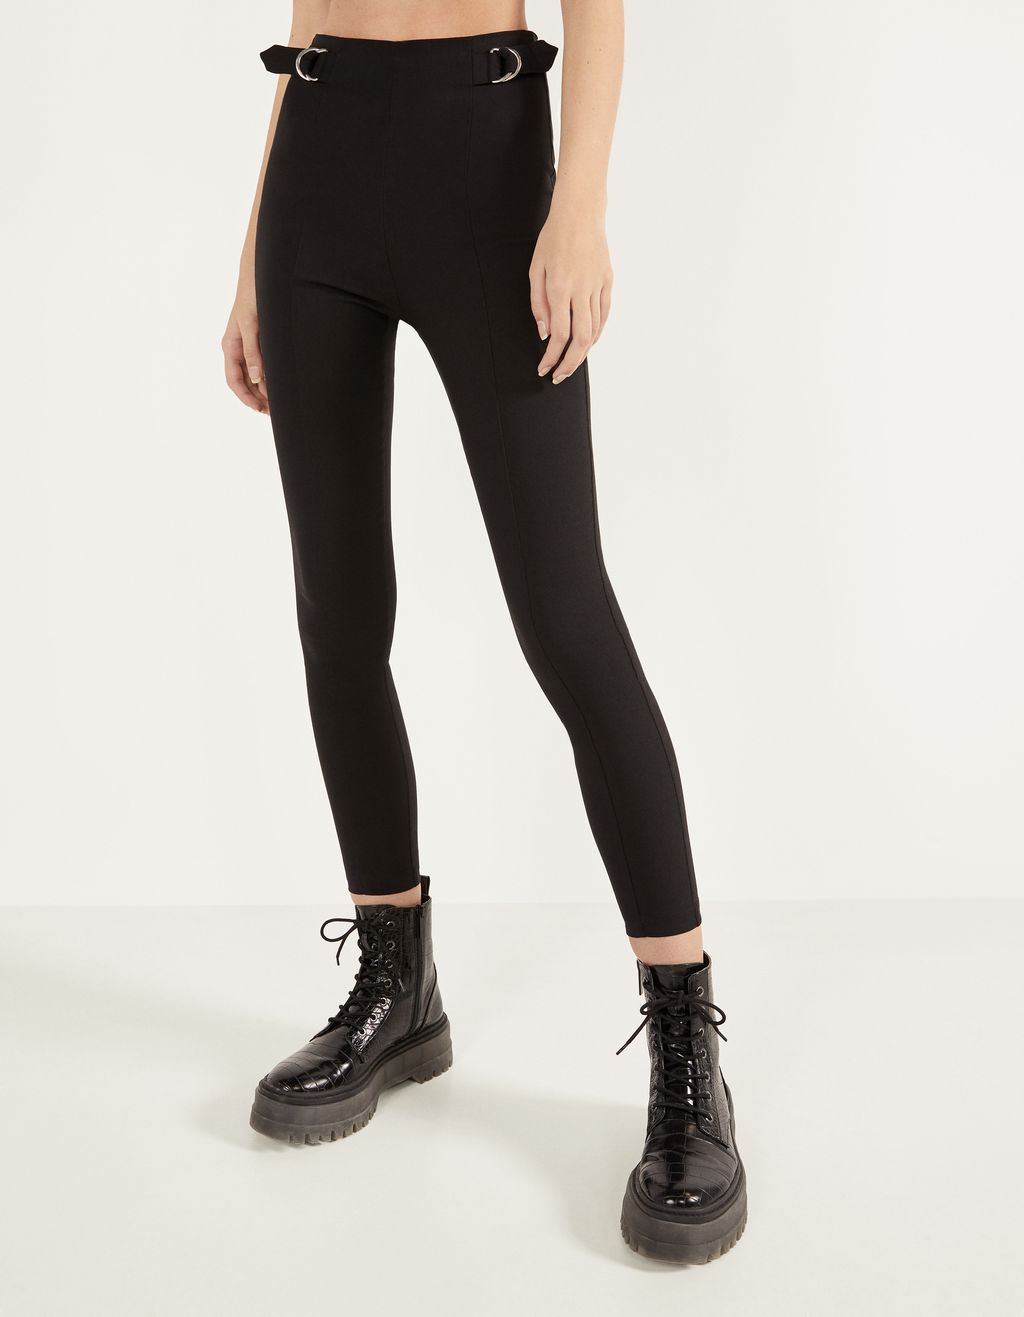 Leggings with buckles